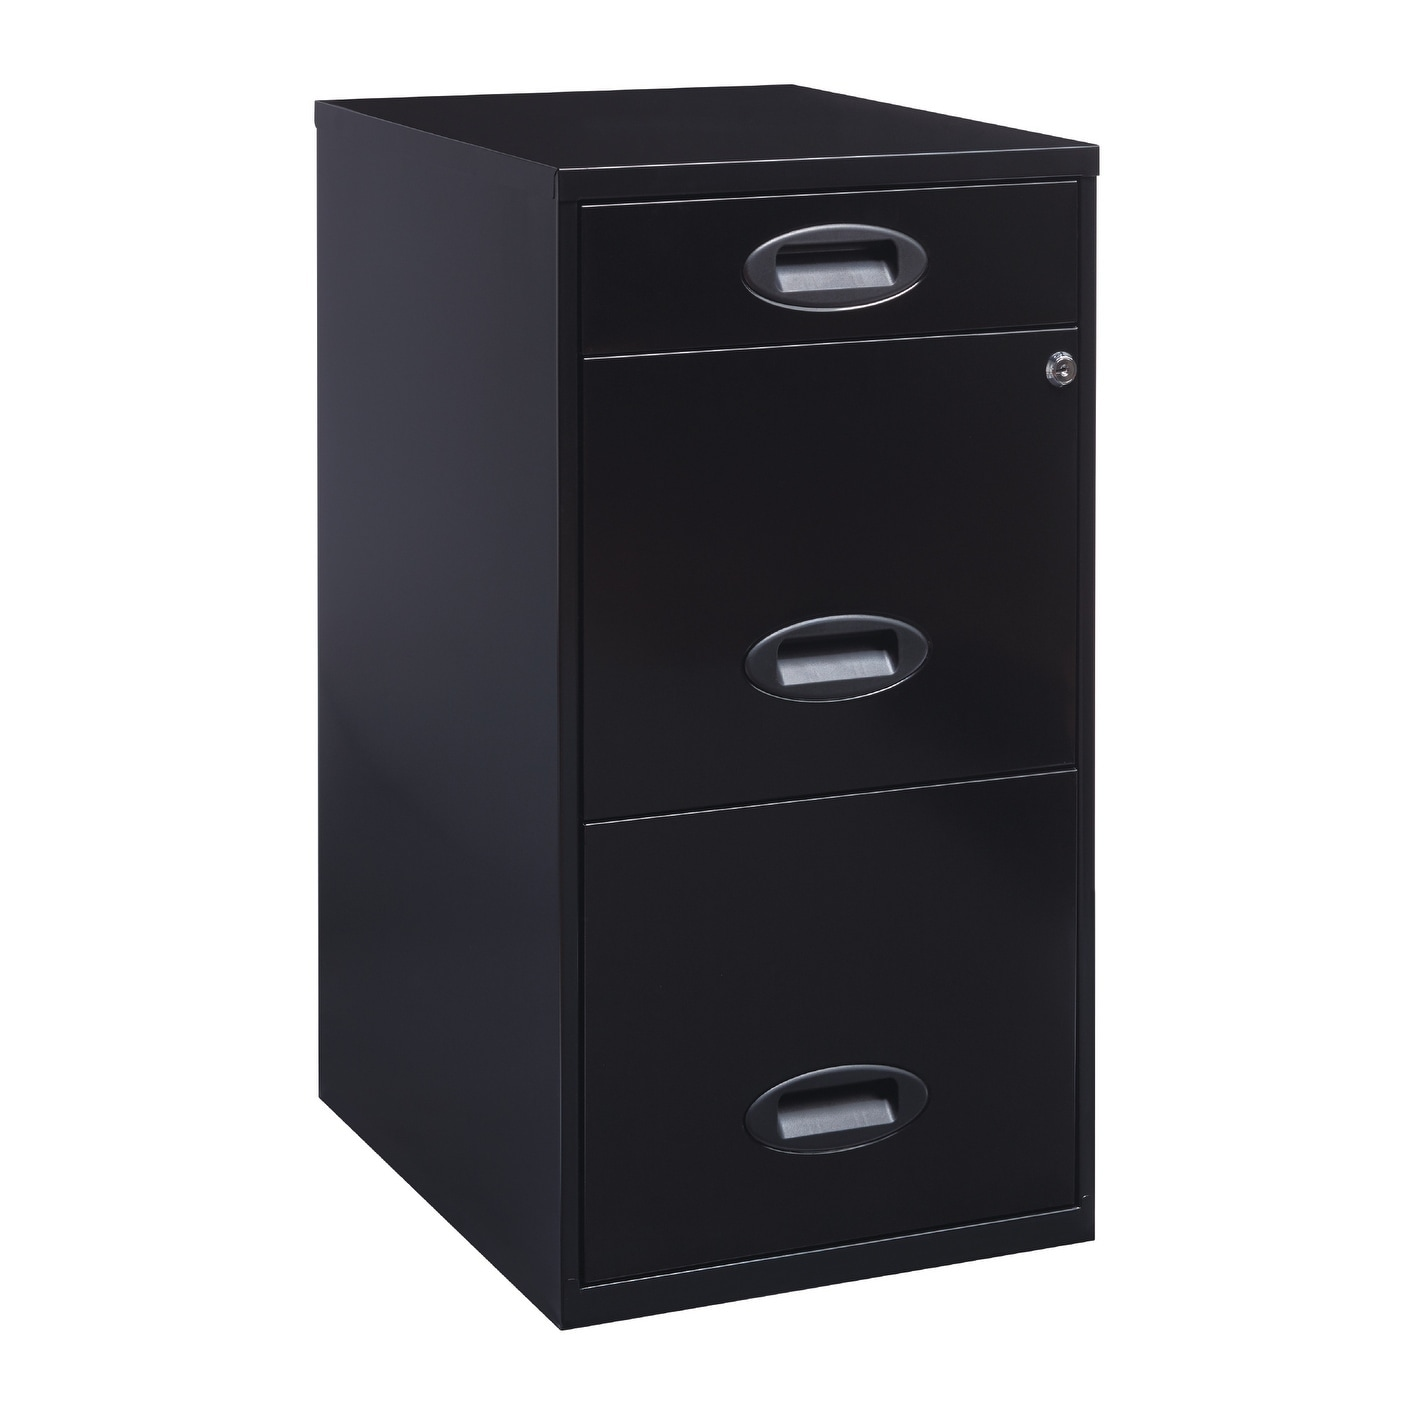 Shop Space Solutions 18  Deep 3-drawer Metal Organizer File Cabinet Black - Free Shipping Today - Overstock.com - 18252613  sc 1 st  Overstock.com & Shop Space Solutions 18